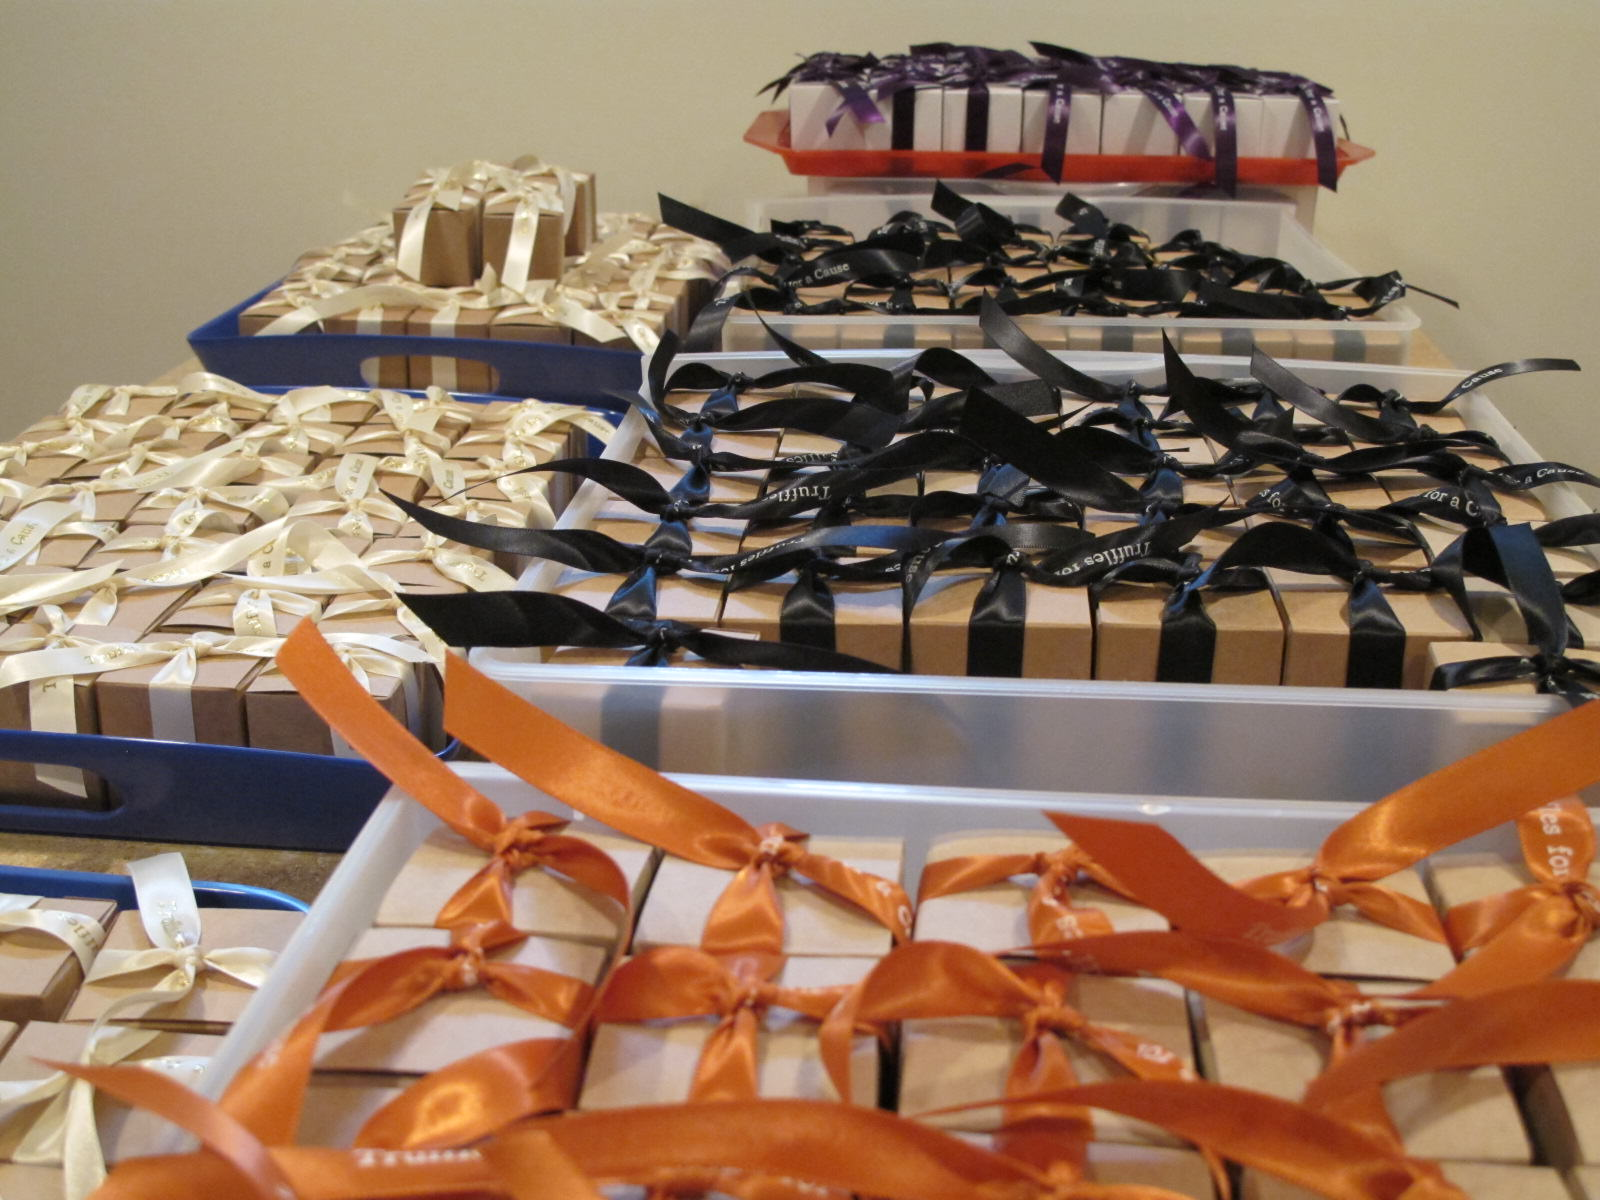 Composite view of multiple customer orders ready for shipping - all with chocolate mini truffles.